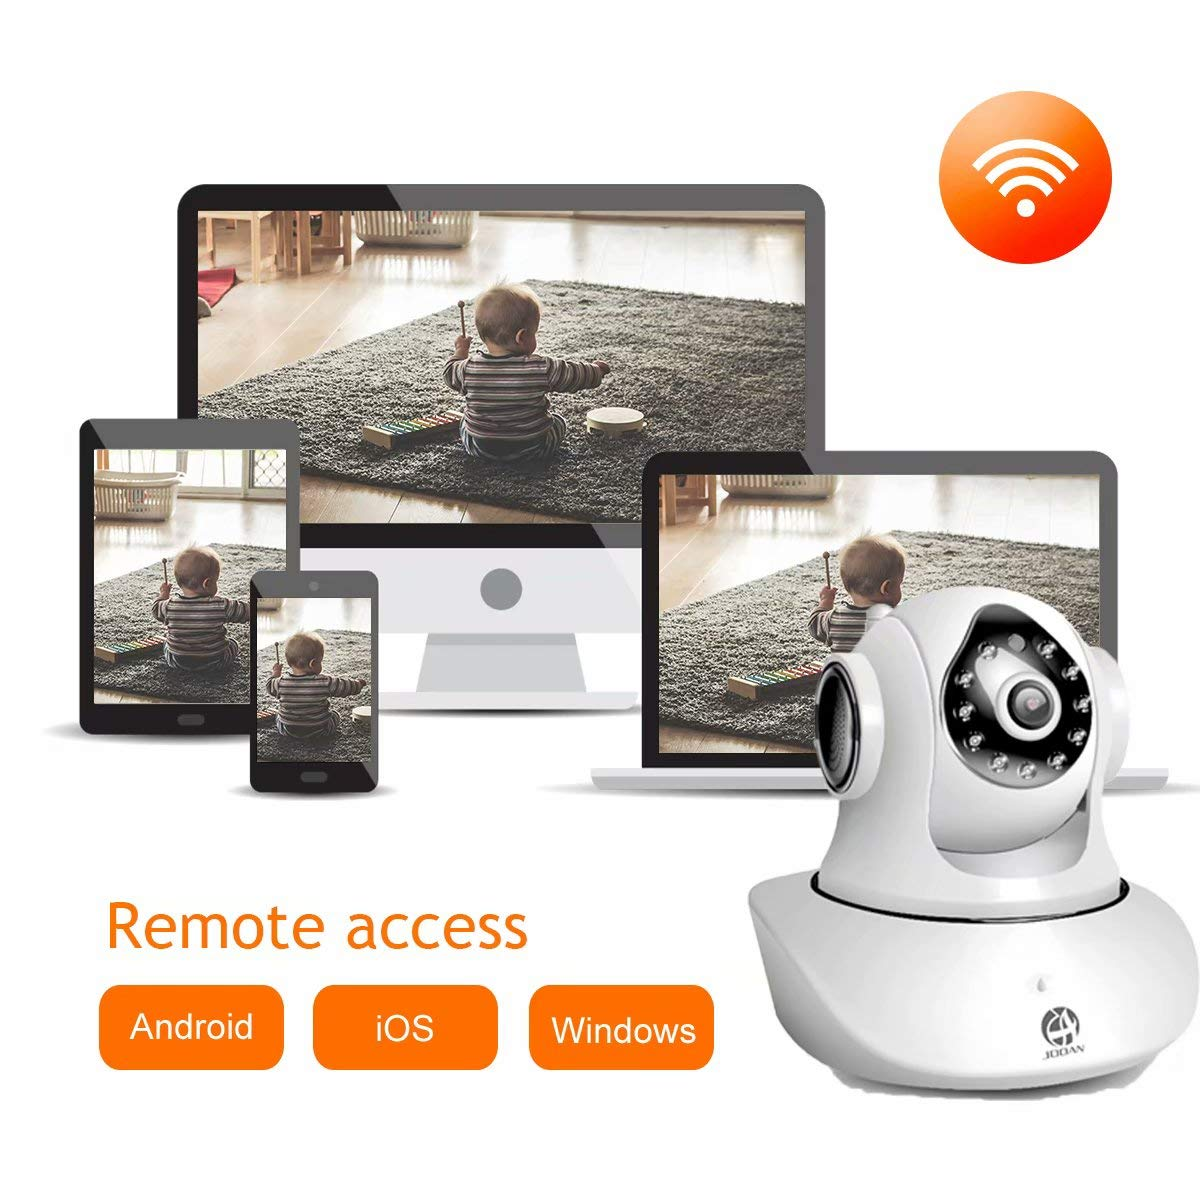 JOOAN WiFi Security Camera Wireless IP Camera with Two-Way Audio Night Vision 720P Camera for Pet Baby Monitor by JOOAN (Image #7)